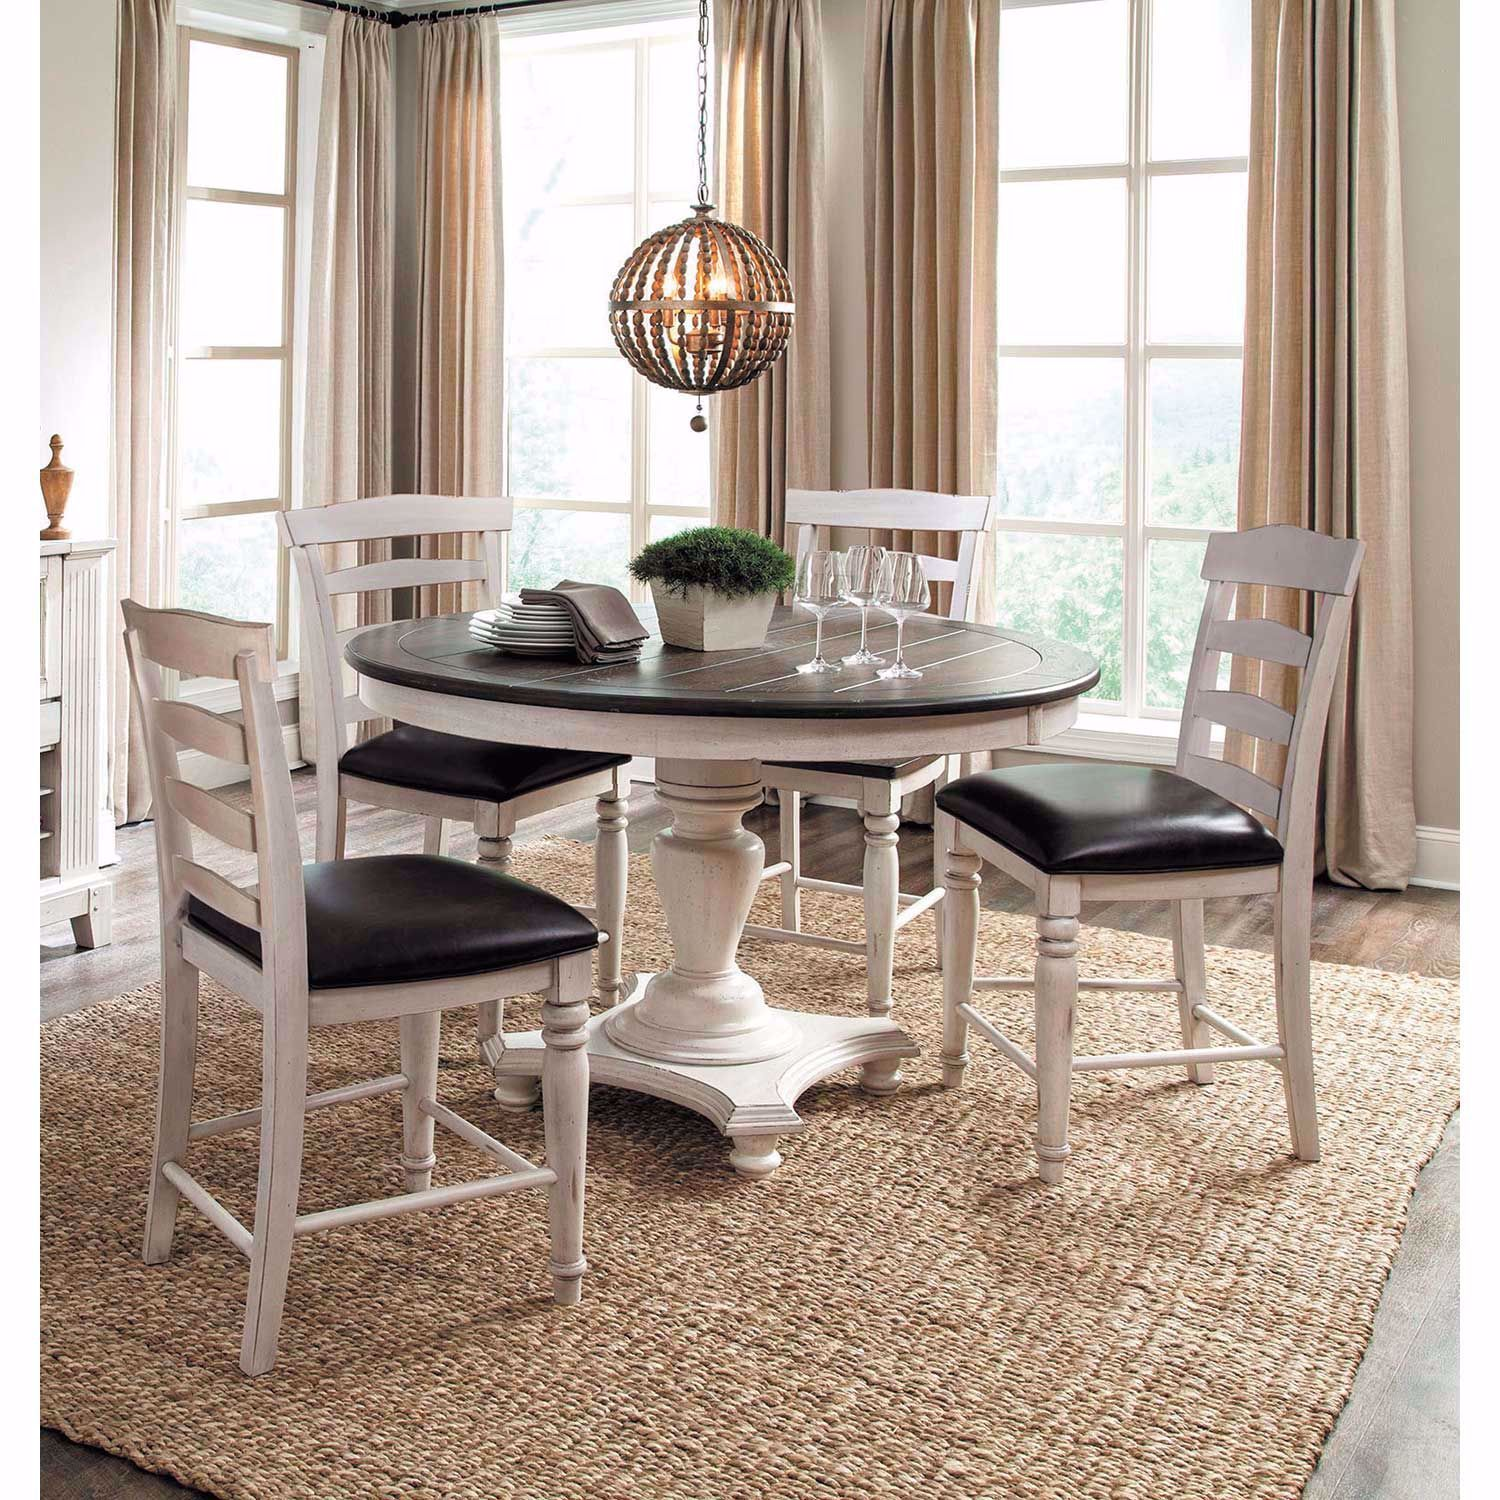 Picture of French Country Counter Height Dining Table